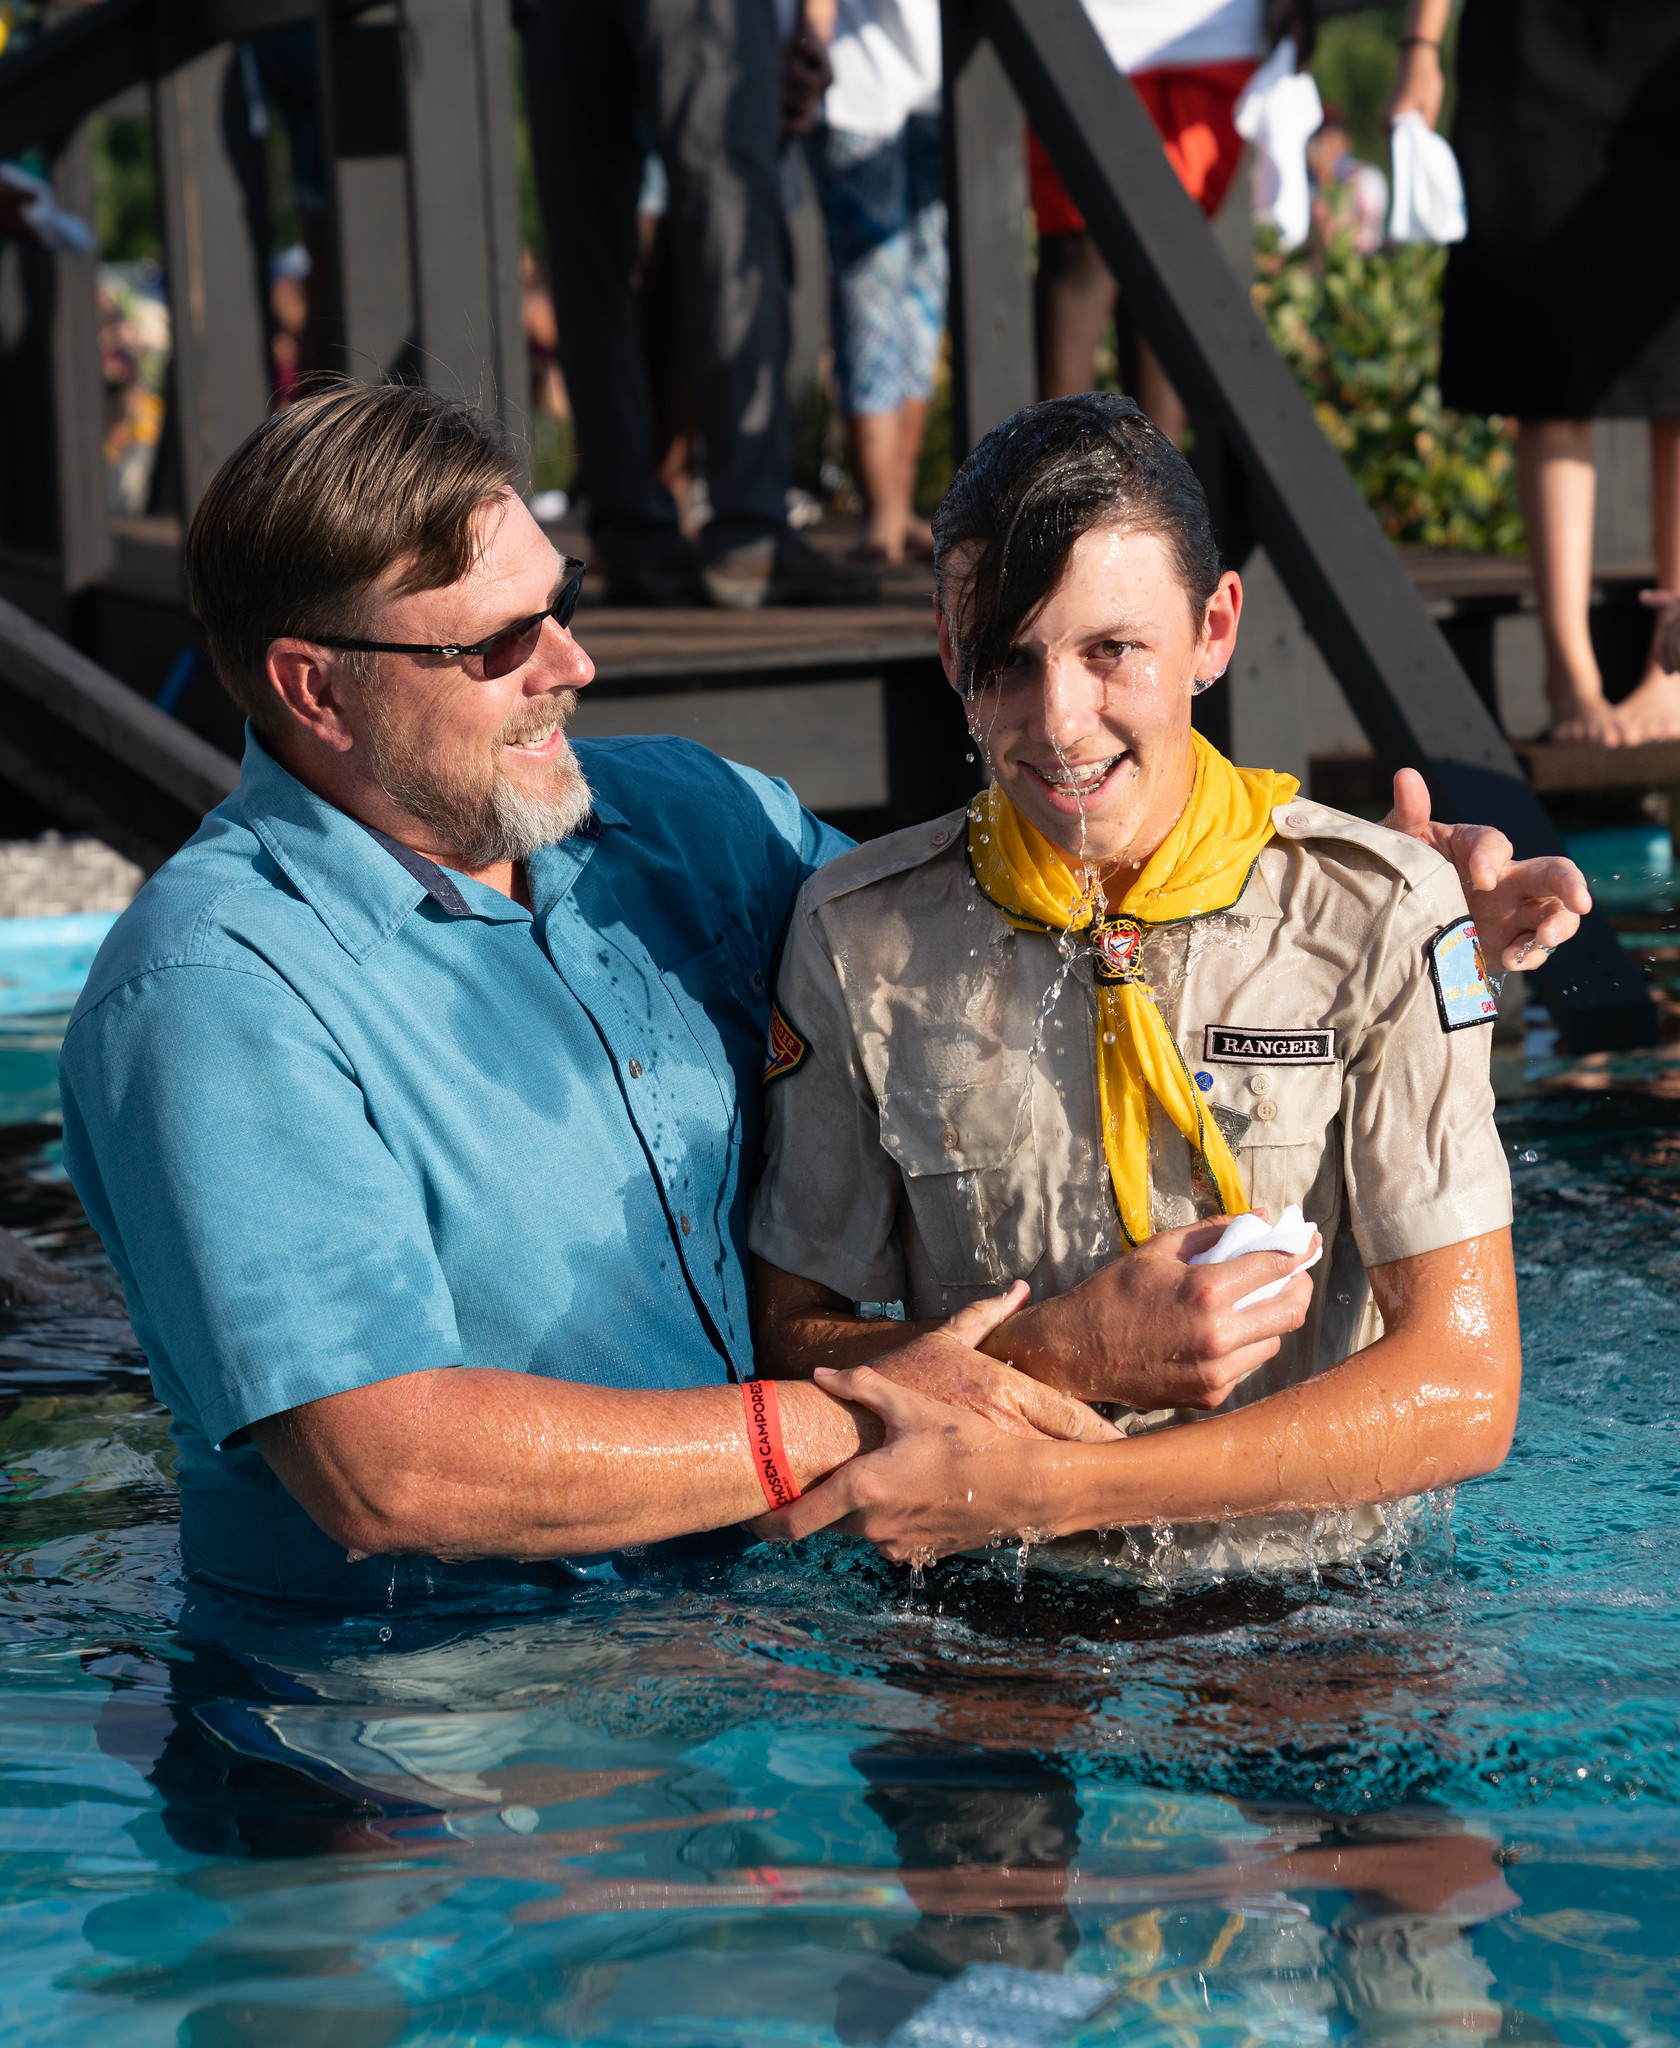 oshkosh 2019 James Bokovoy, pastor of the Okmulgee Seventh-day Adventist Church in Oklahoma, baptizes a teen Pathfinder Terrence Bowen photo